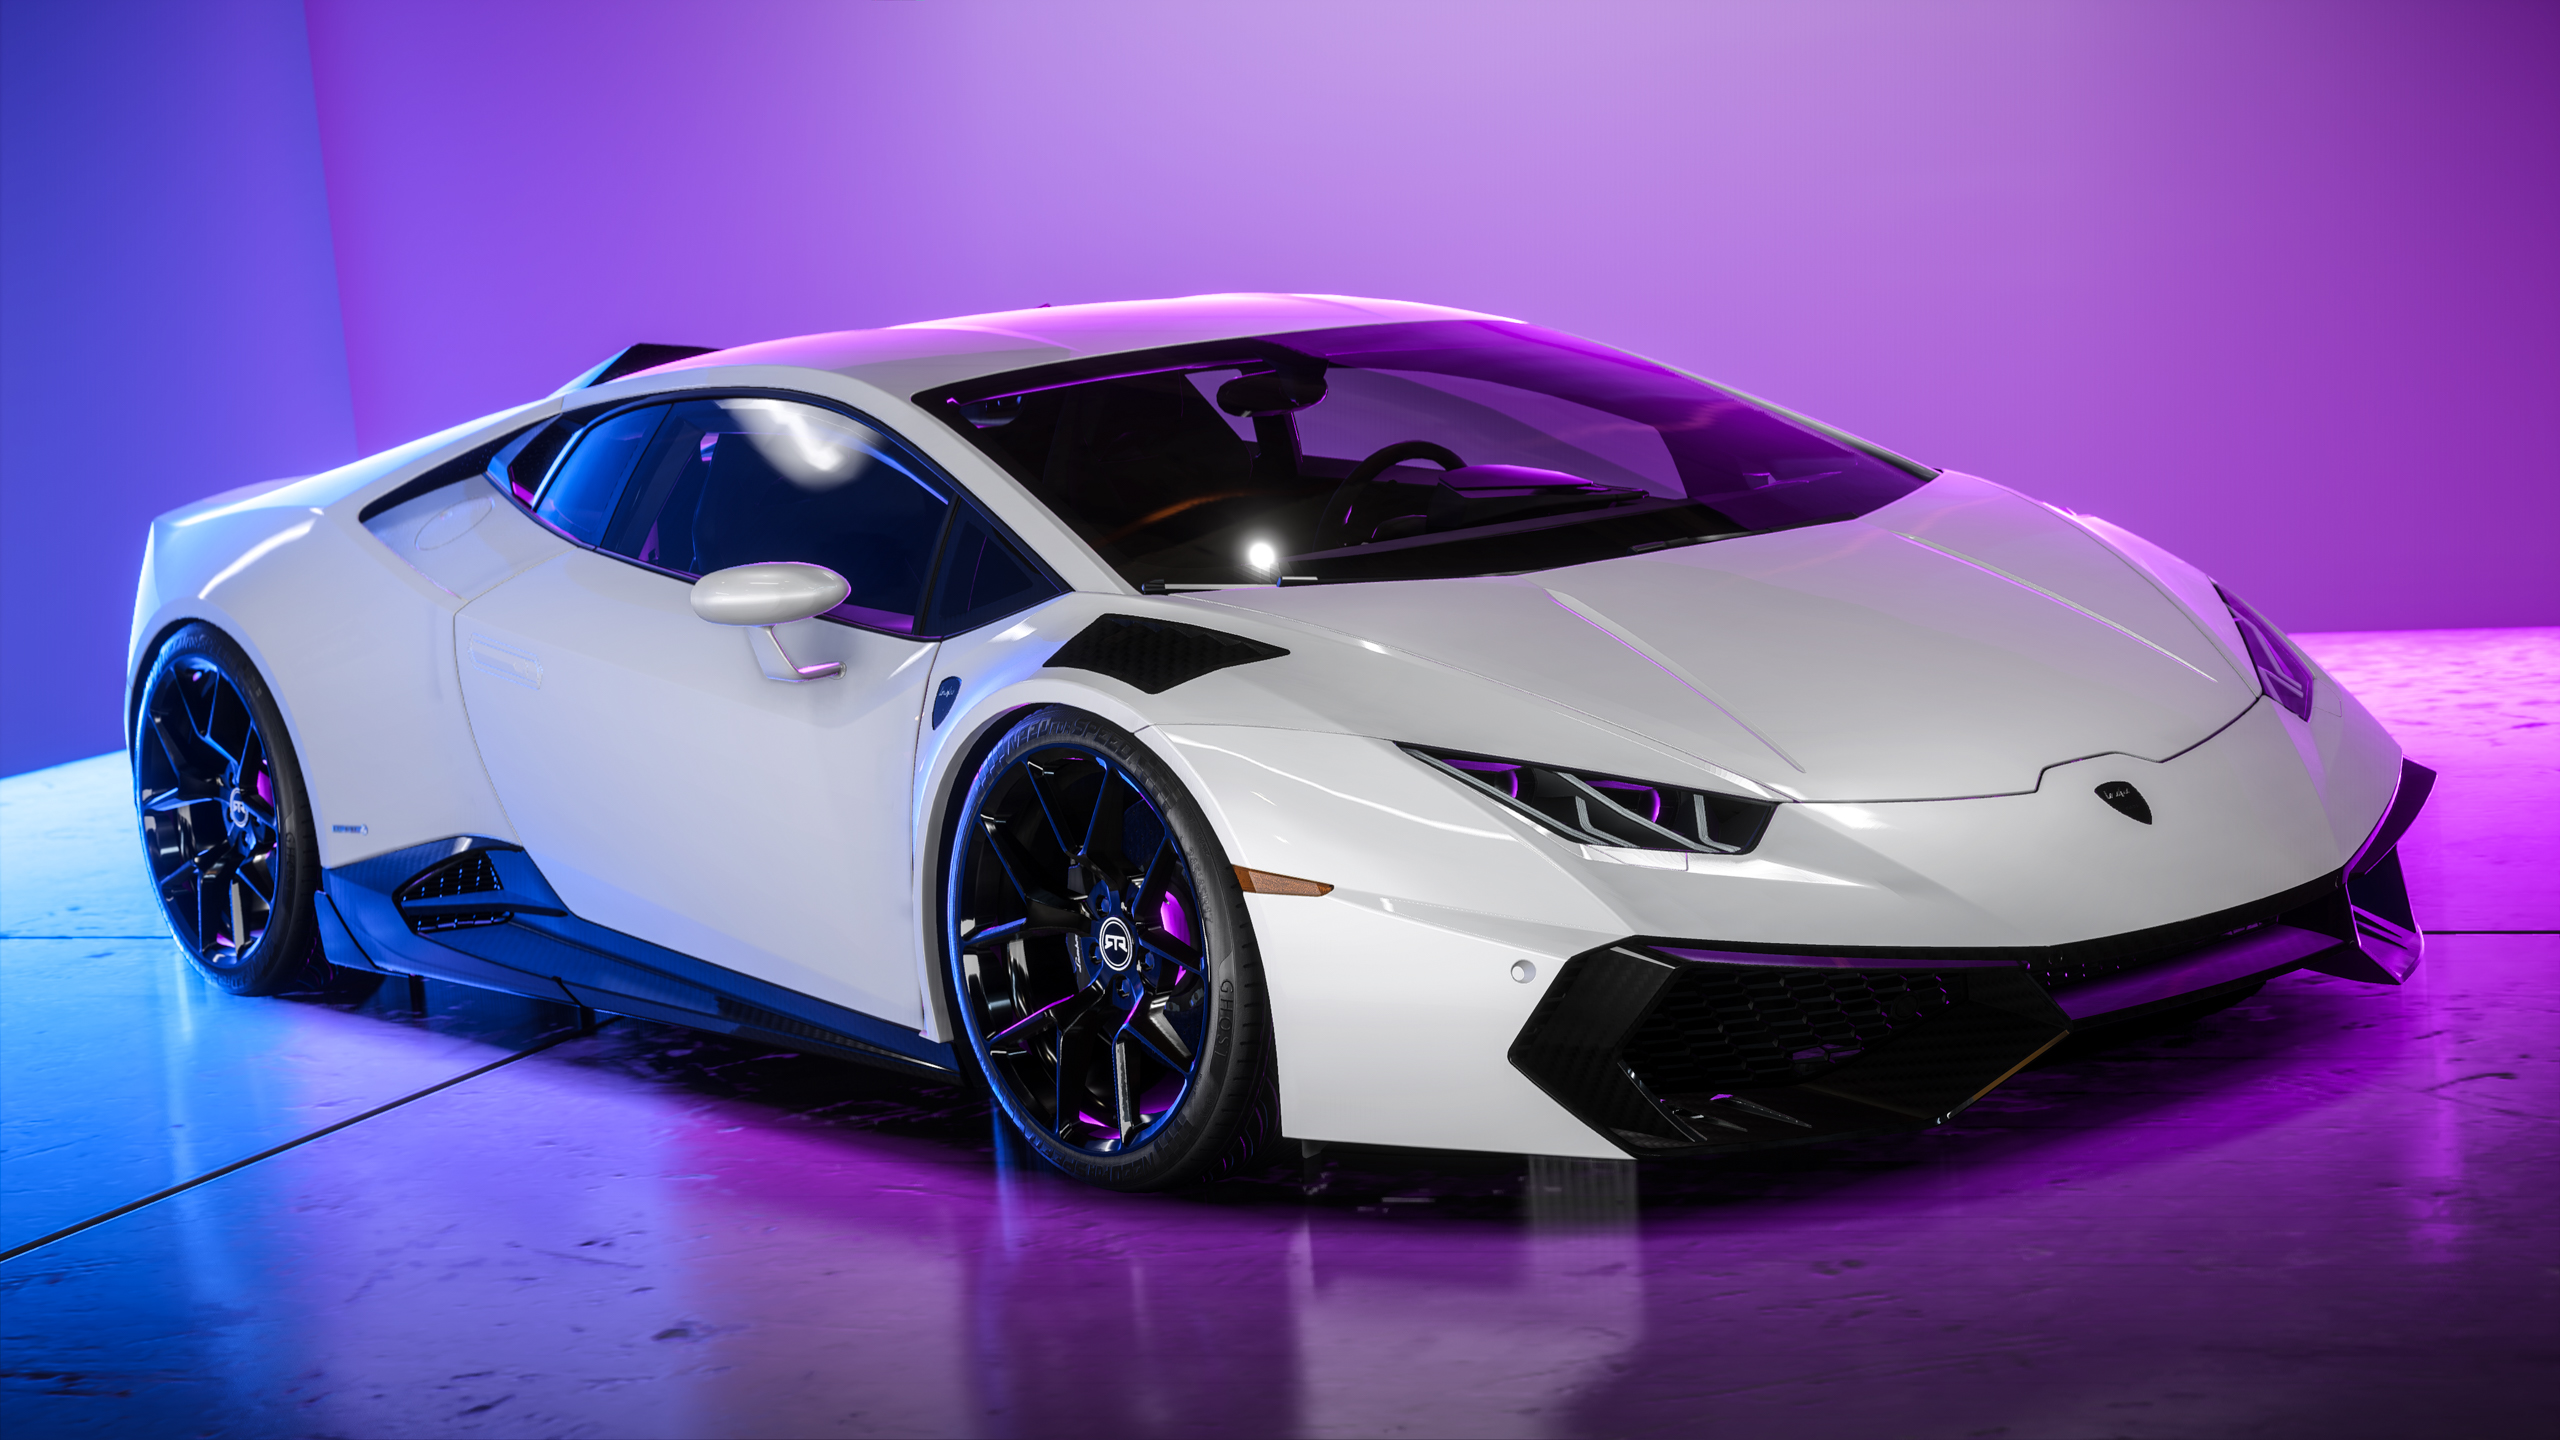 Neon Lamborghini Wallpaper Hd Car Wallpapers Id 13742